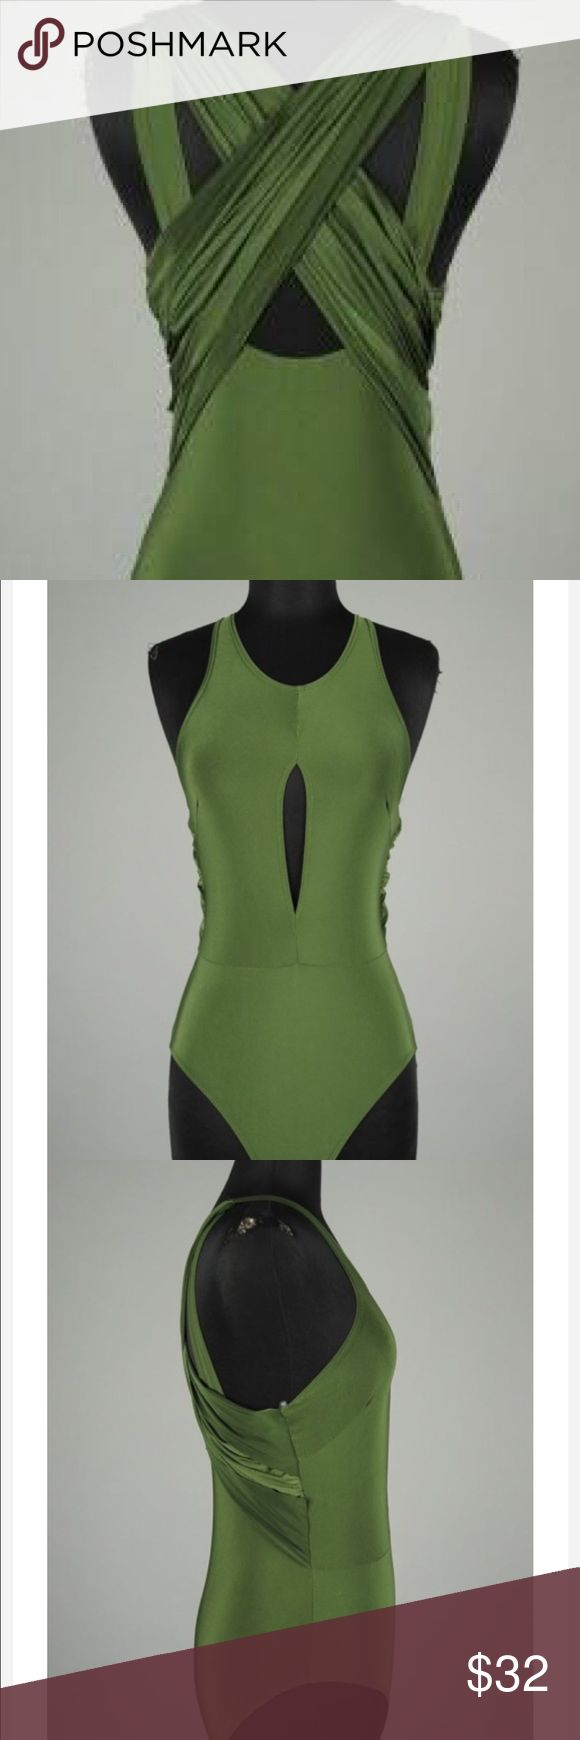 SASSY HUNTER GREEN BODYSUIT SASSY hunter green bodysuit it is! Like no other, its one of a kind! Crisscrossed in the back and a oval opening in the front.These will go fast so order yours today! #finalprice #nooffers  ​ *Only available in hunter green.   *Sizes available in small, medium and large.  *94% Polyester *6% Spandex *Made in USA. ​*100% Cute Tops